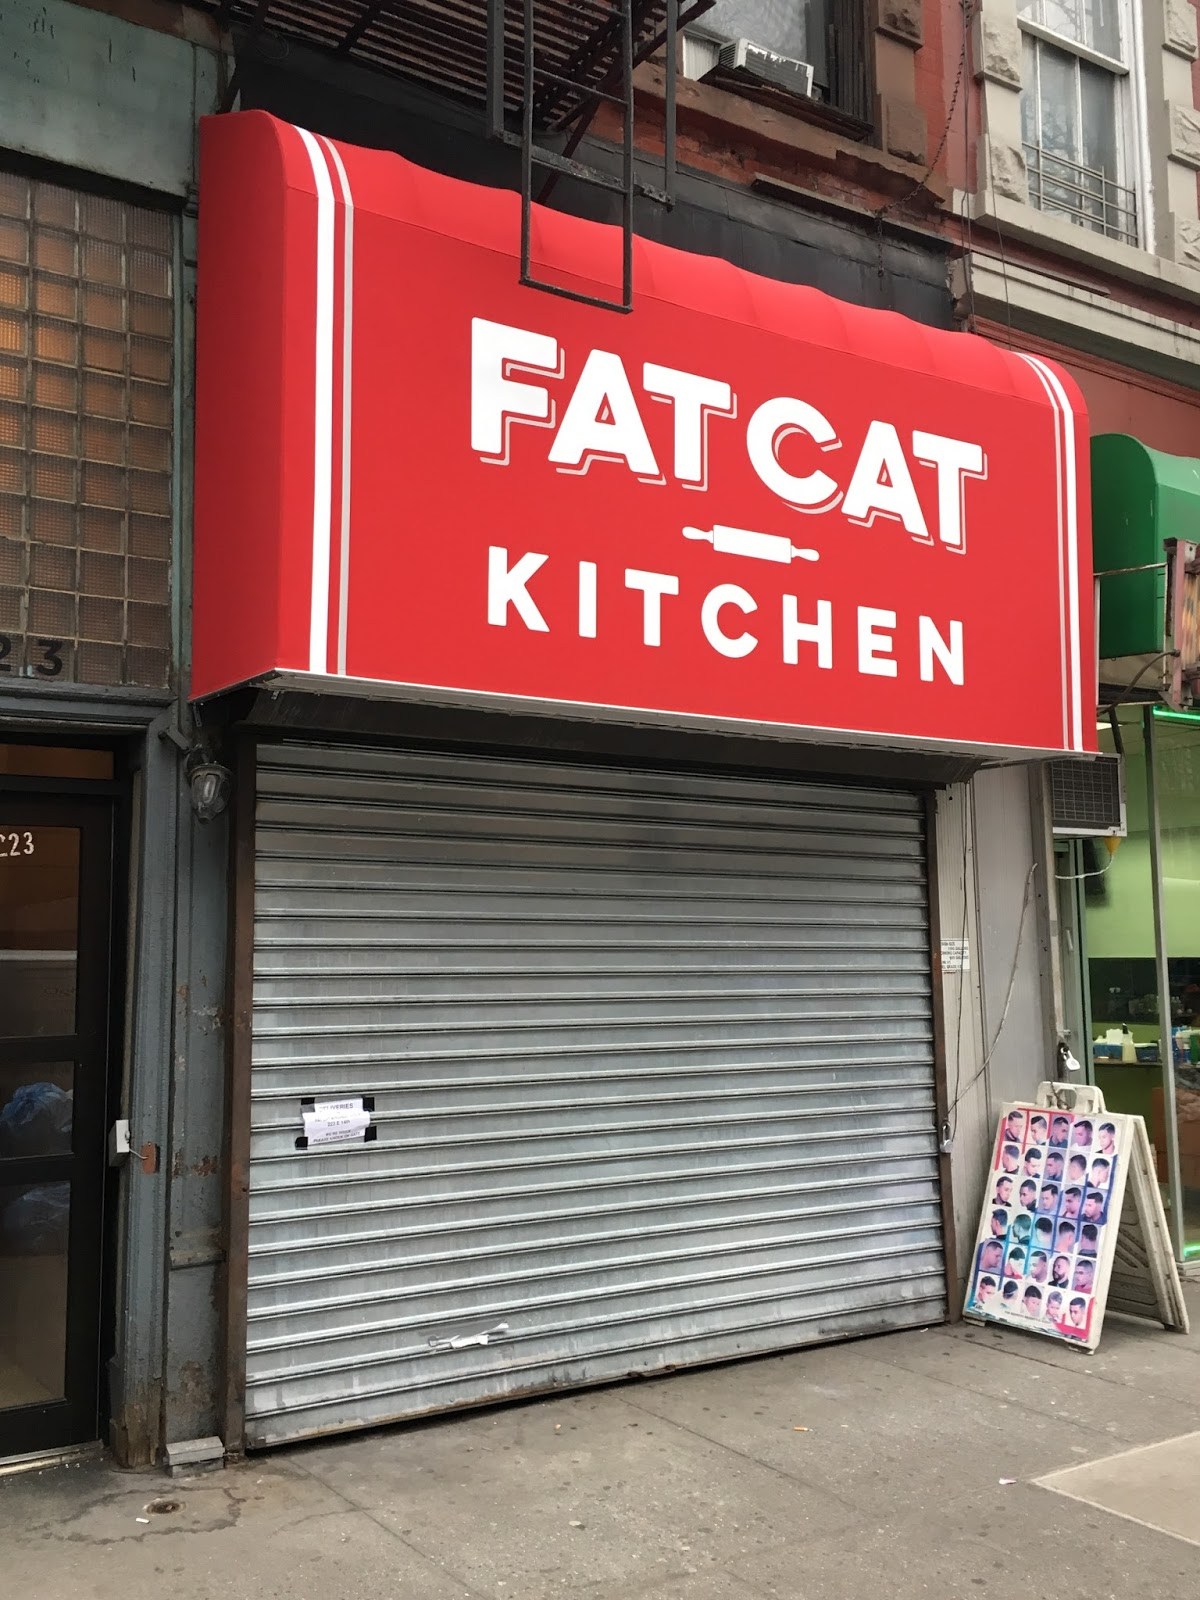 ev grieve: 1st sign of fat cat kitchen on 14th street